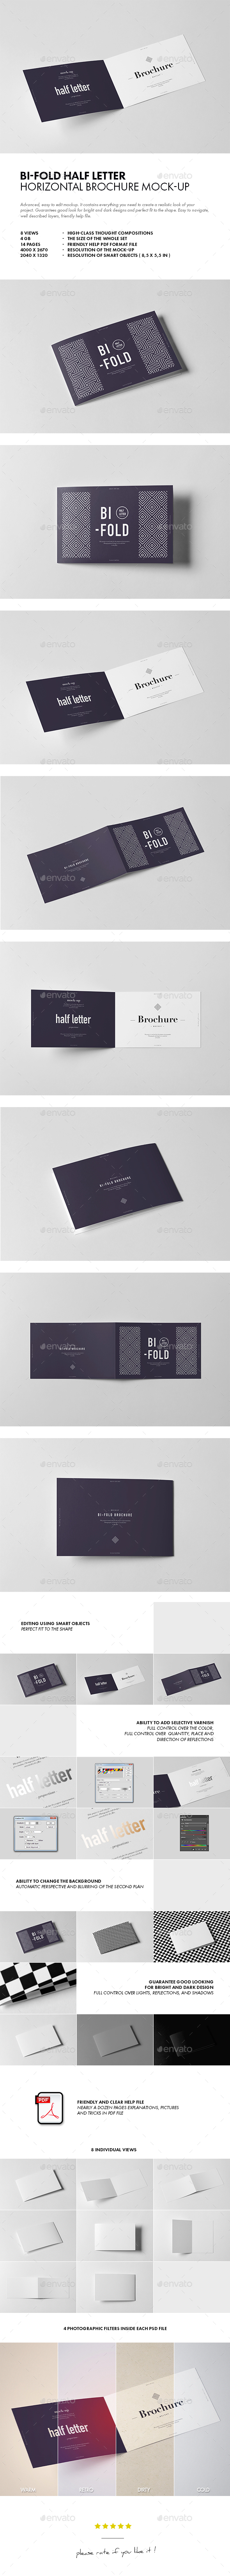 Bi-Fold Half Letter Horizontal Brochure Mock-up - Brochures Print